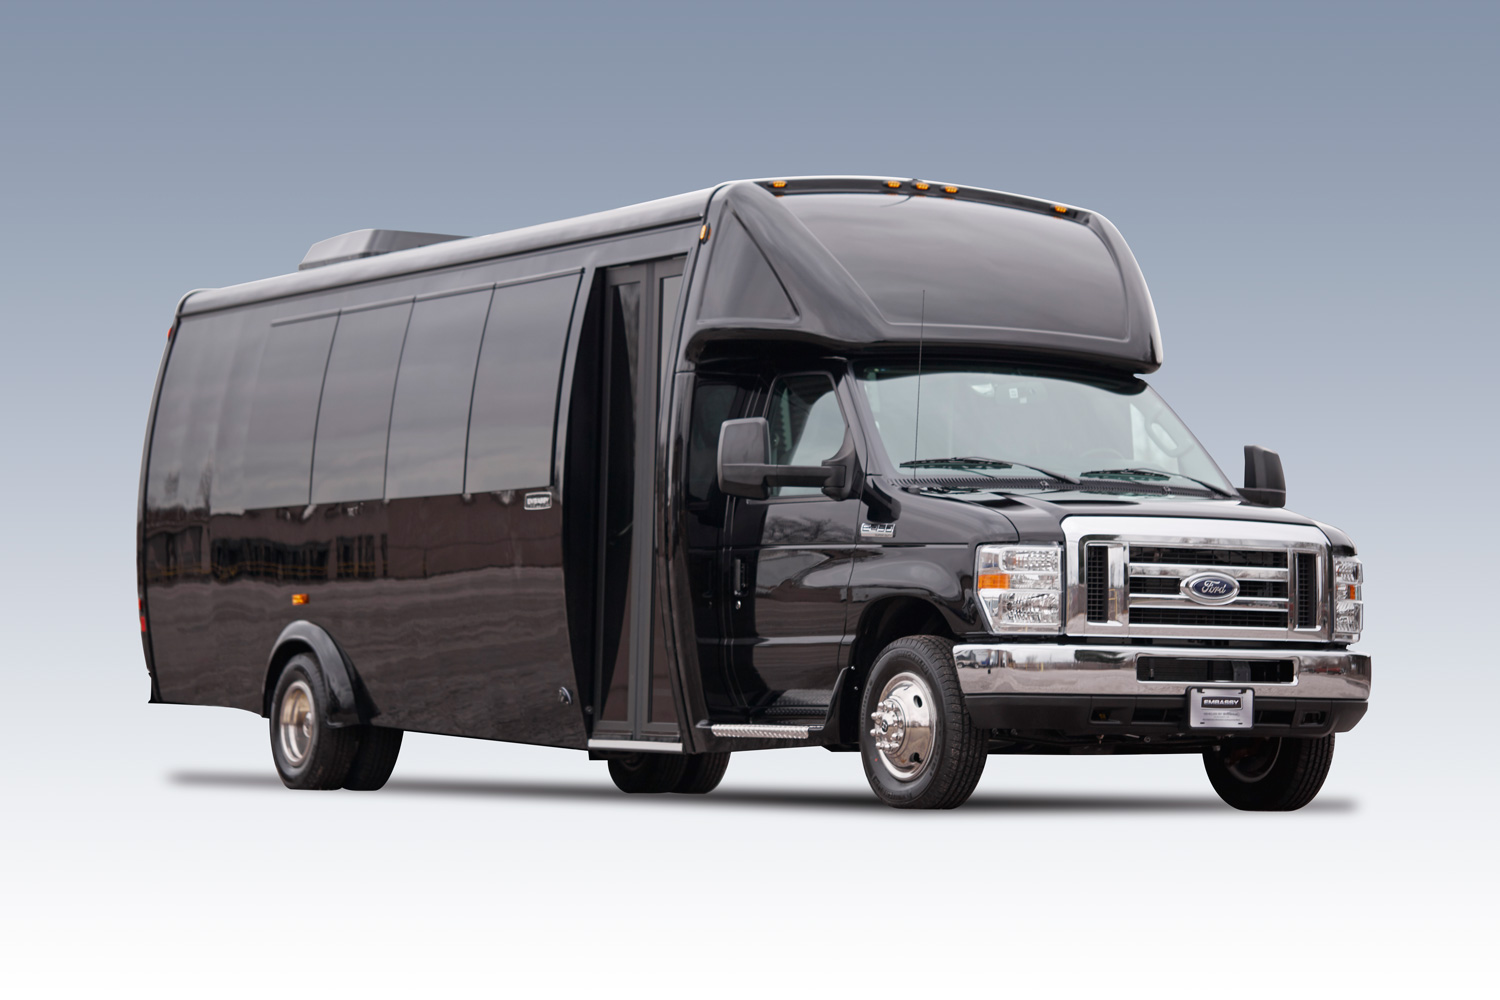 E450 Limo and Shuttle Bus for sale.